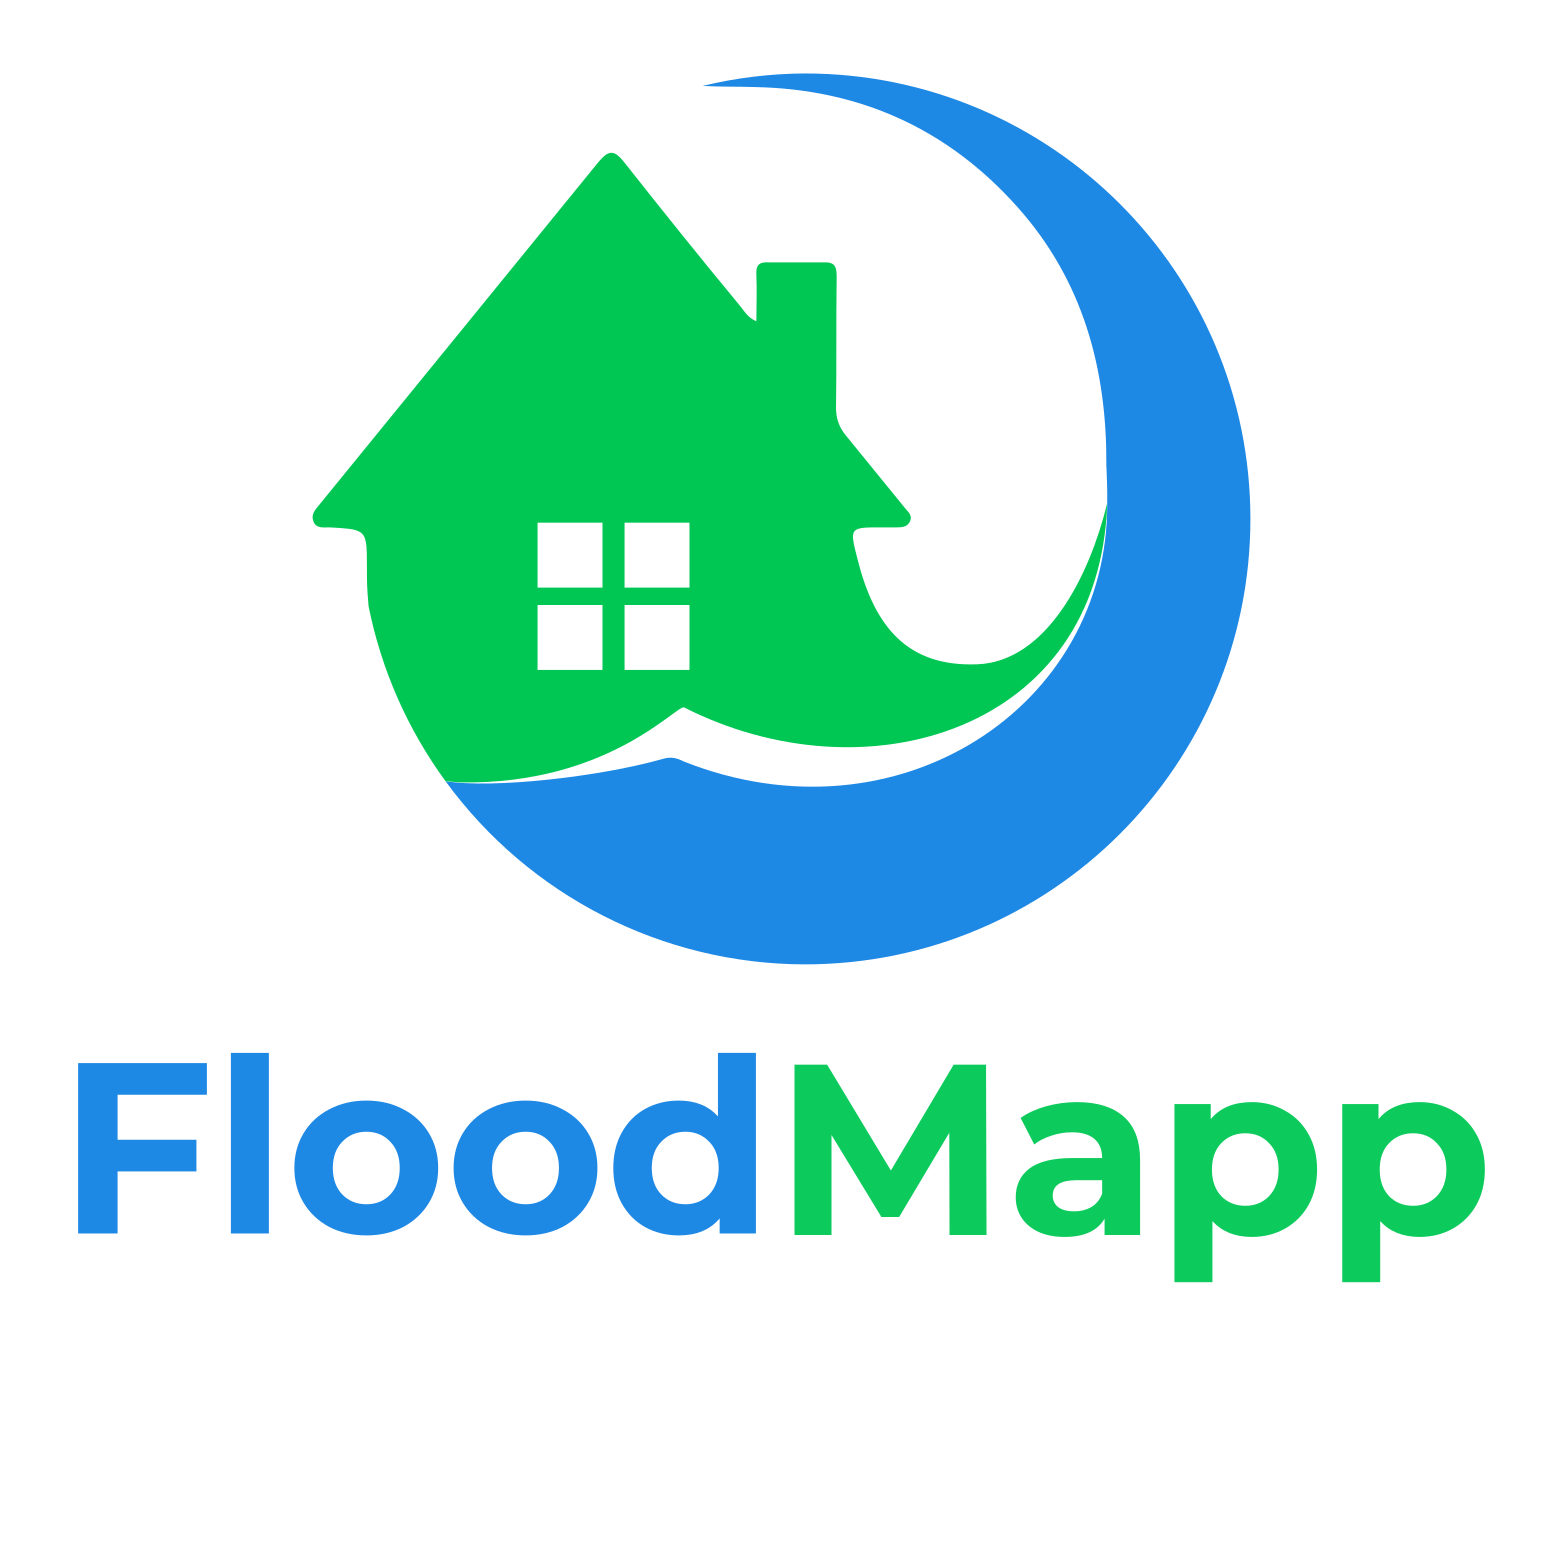 FloodMapp